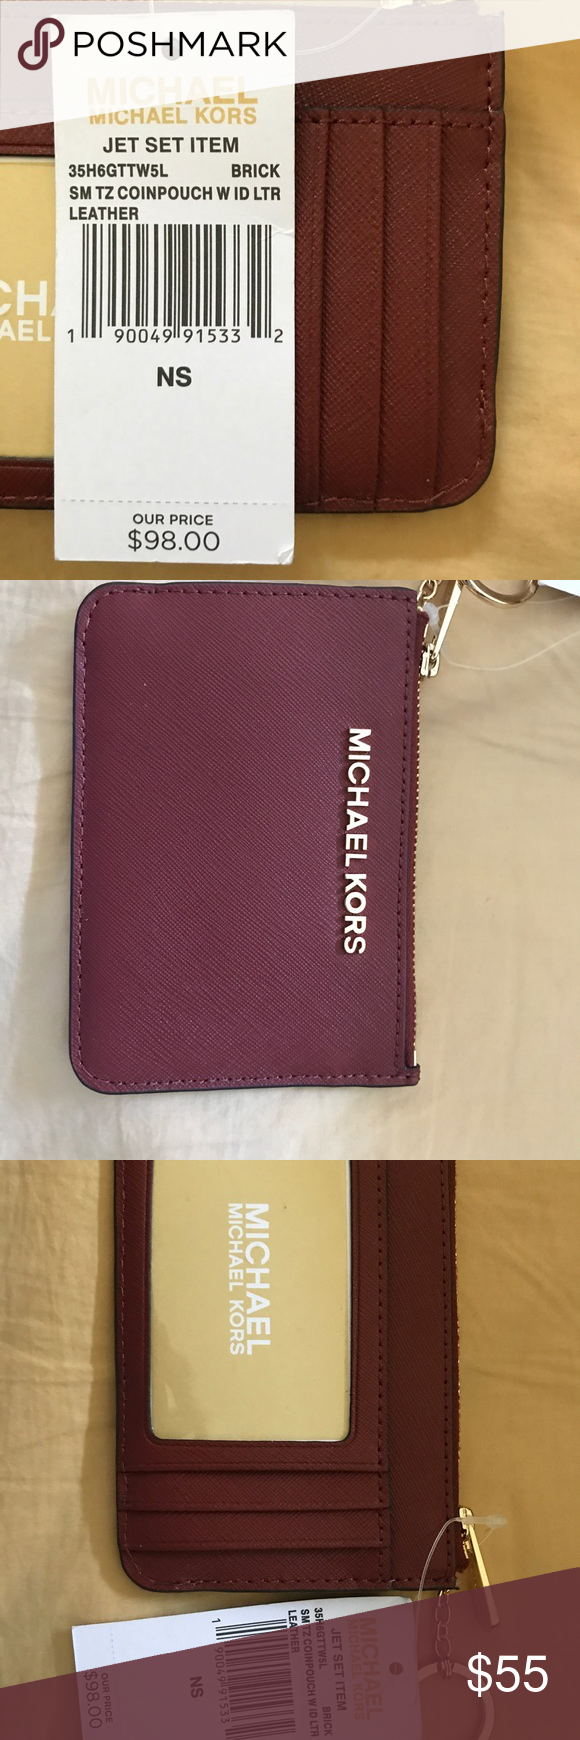 Michael Kors Coin Pouch Brand new with tags, MK Coin Pouch ...